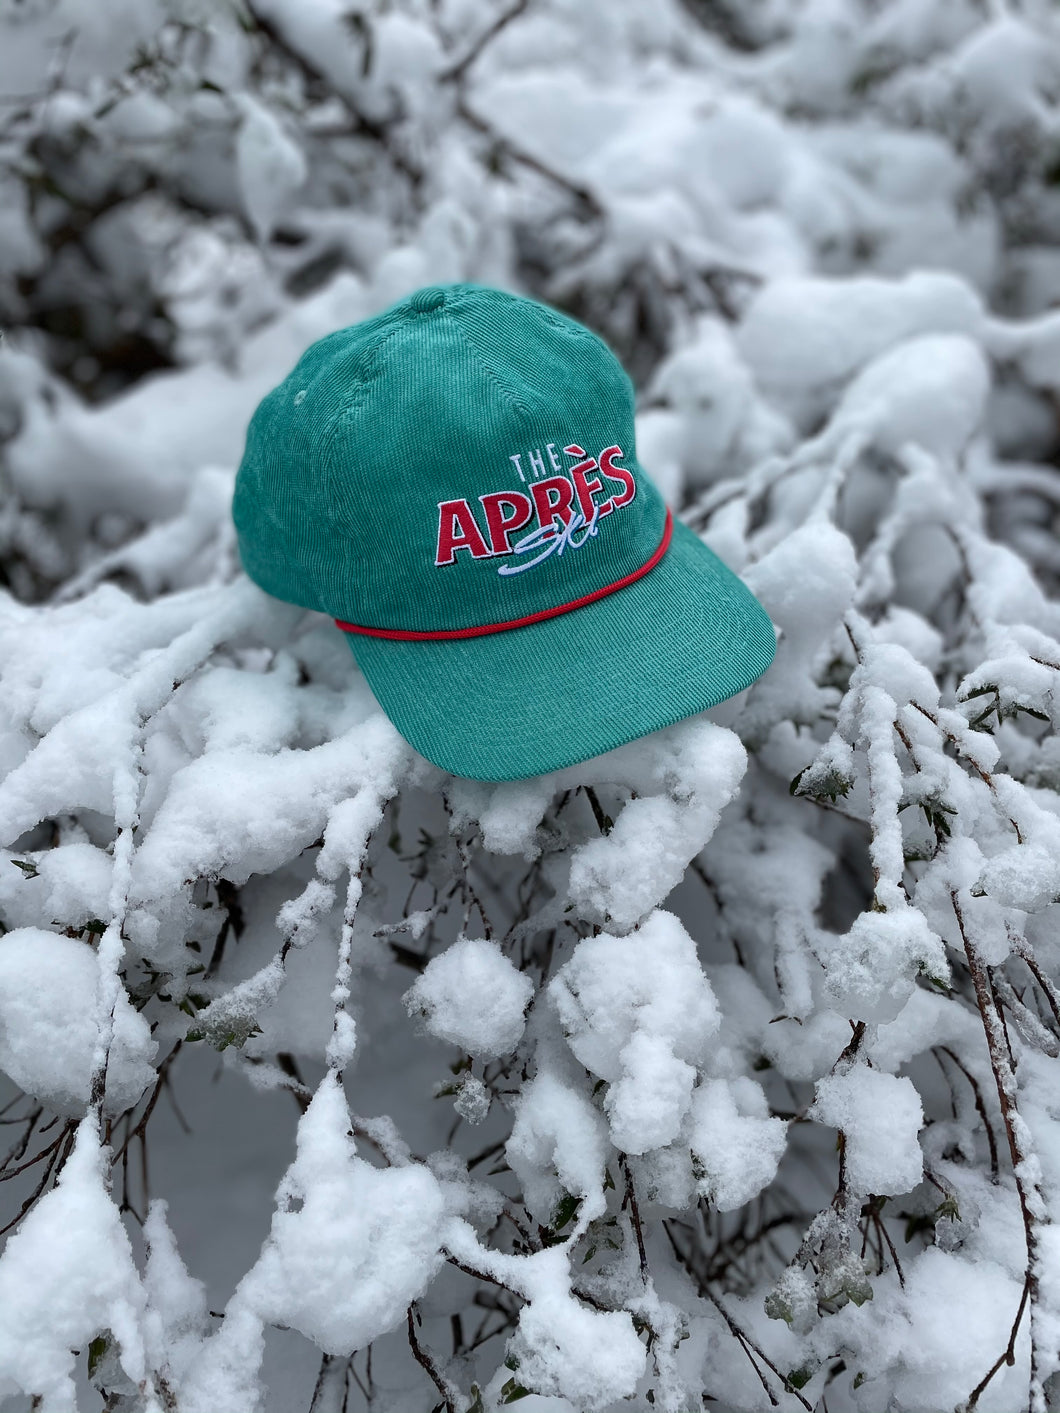 The Apres-Ski Vintage Corduroy Hat